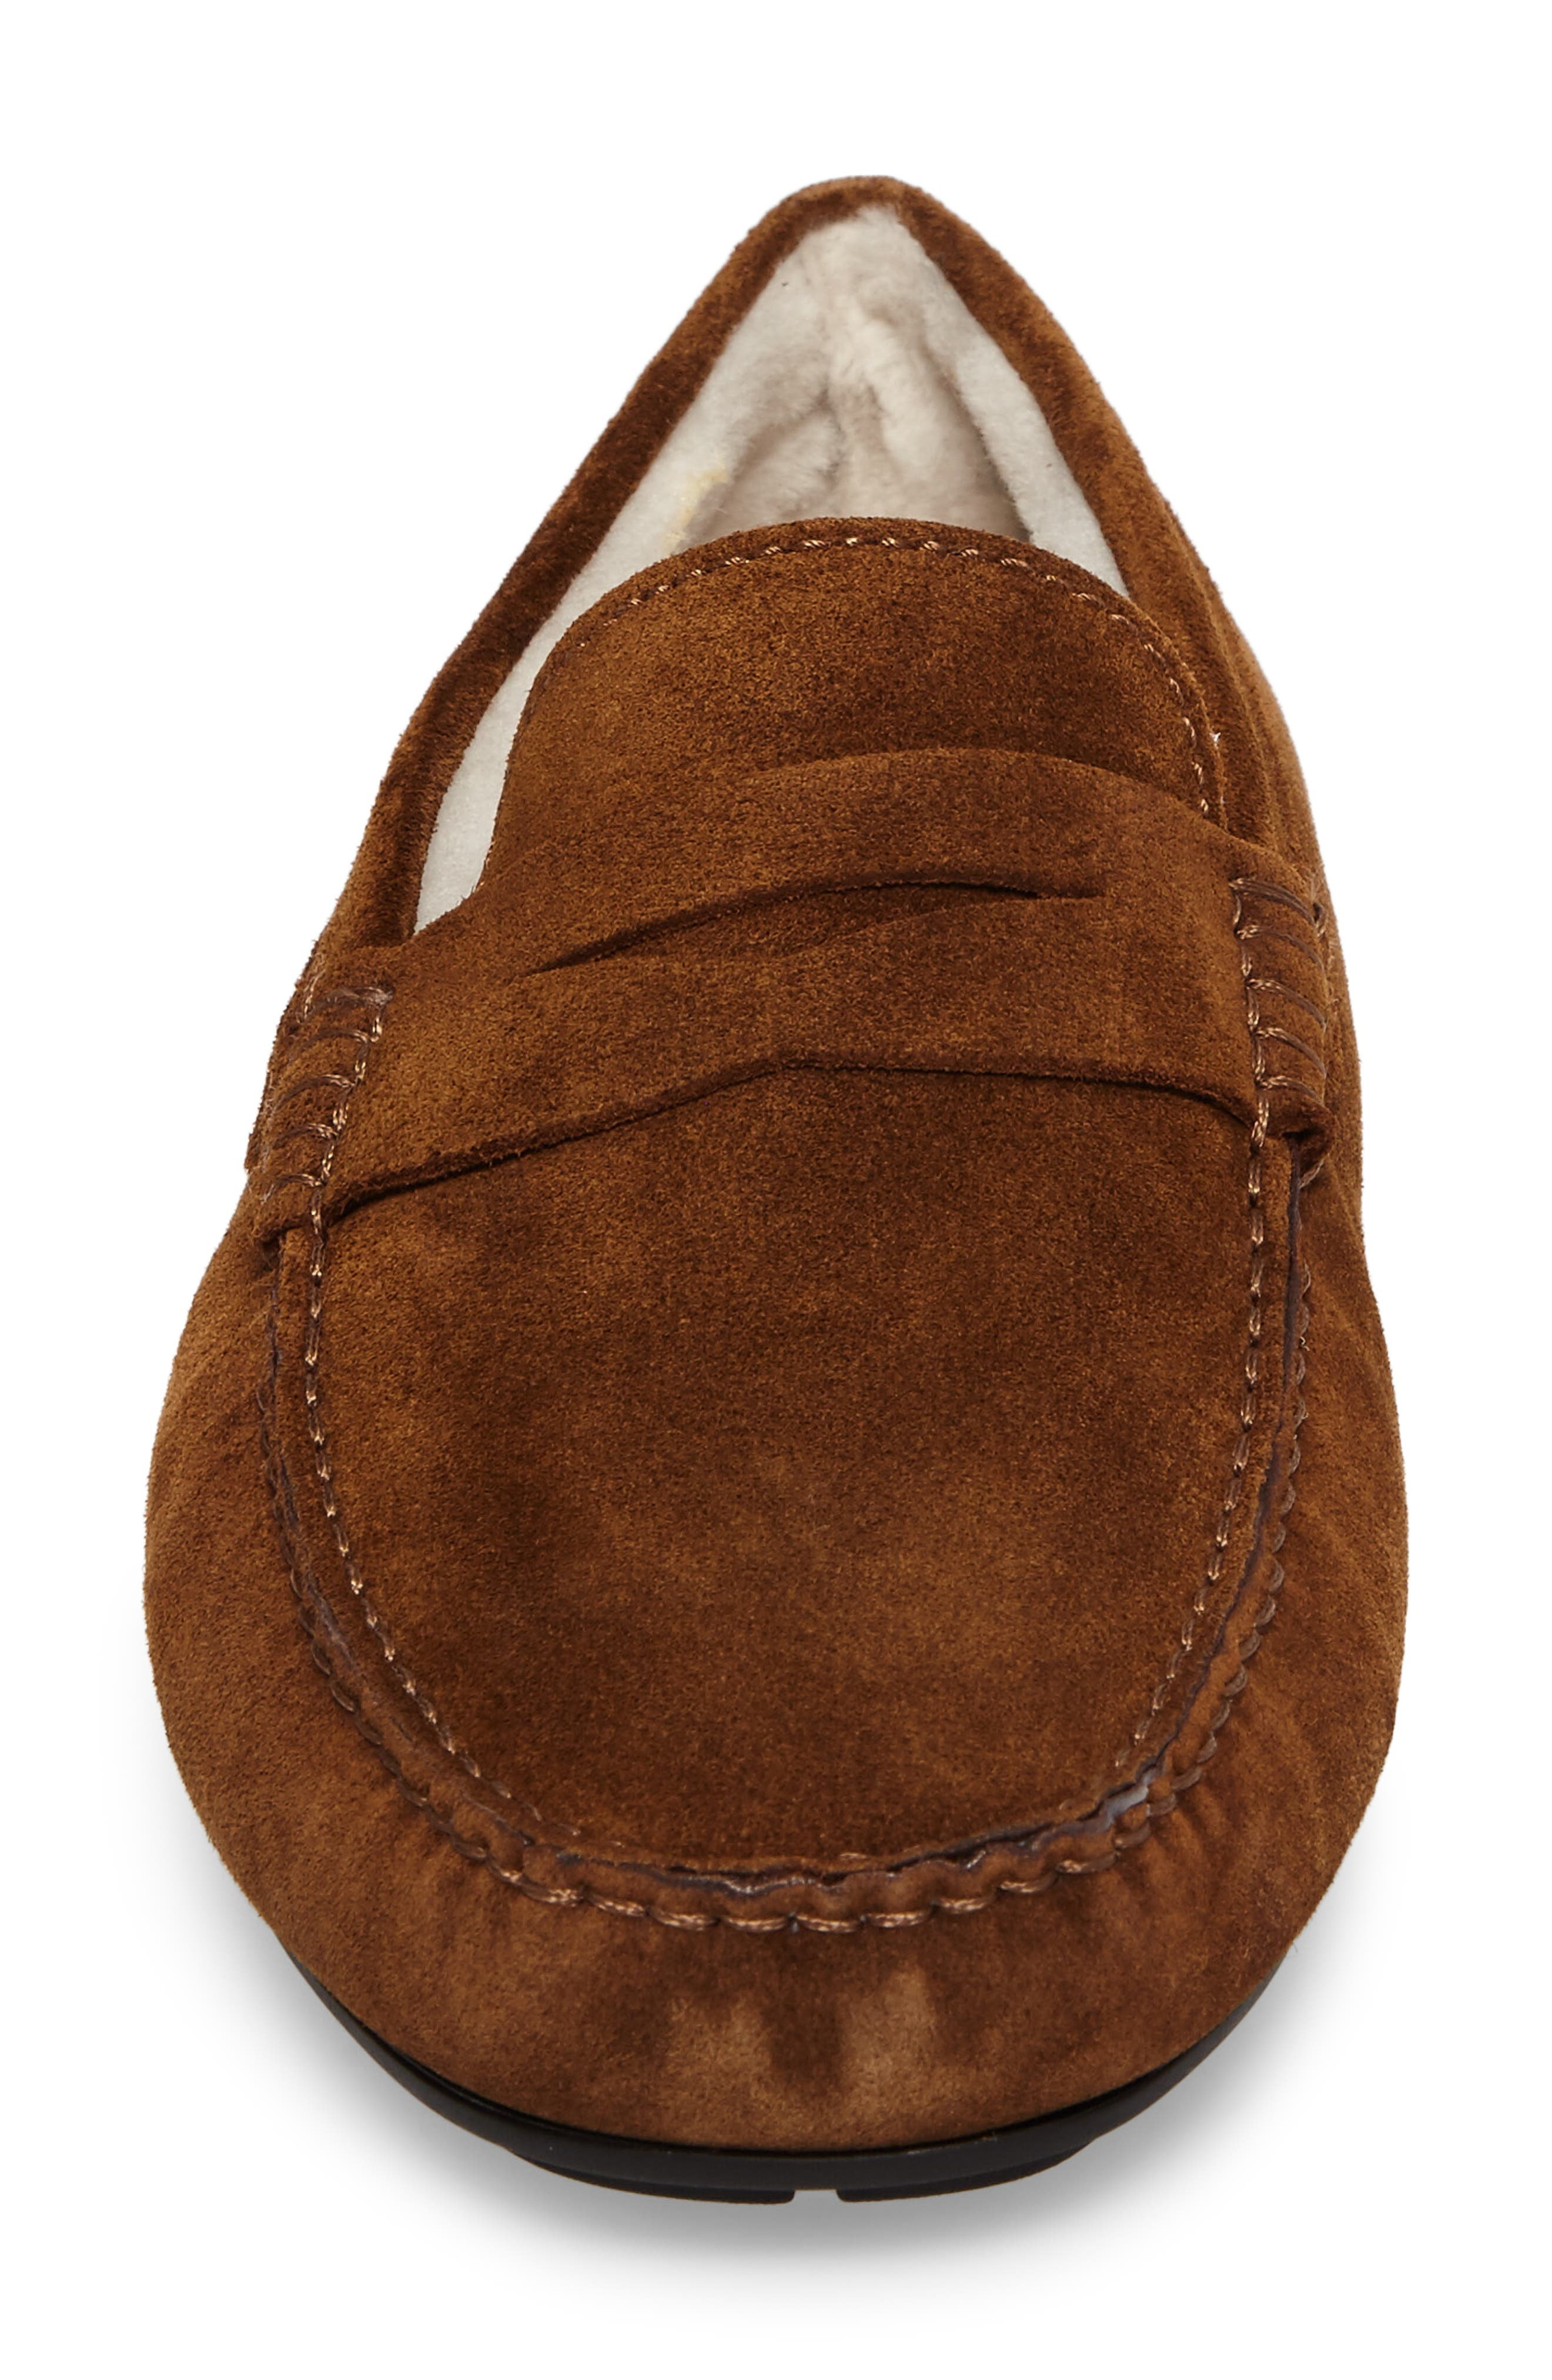 Norse Penny Loafer with Genuine Shearling,                             Alternate thumbnail 4, color,                             Brown/ Brown Suede Leather